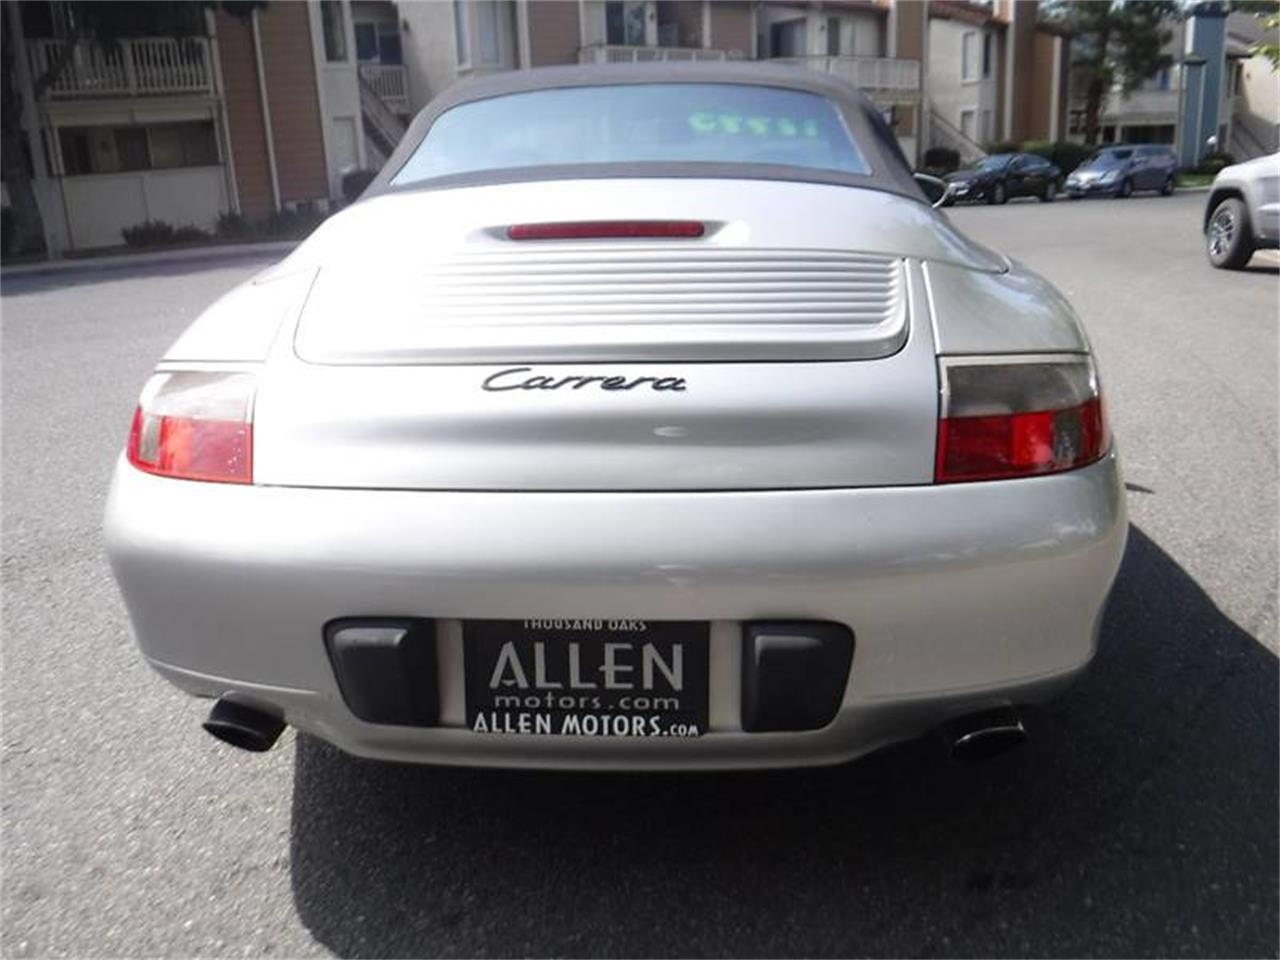 Large Picture of 2000 Porsche 911 located in Thousand Oaks California Offered by Allen Motors, Inc. - LE9D